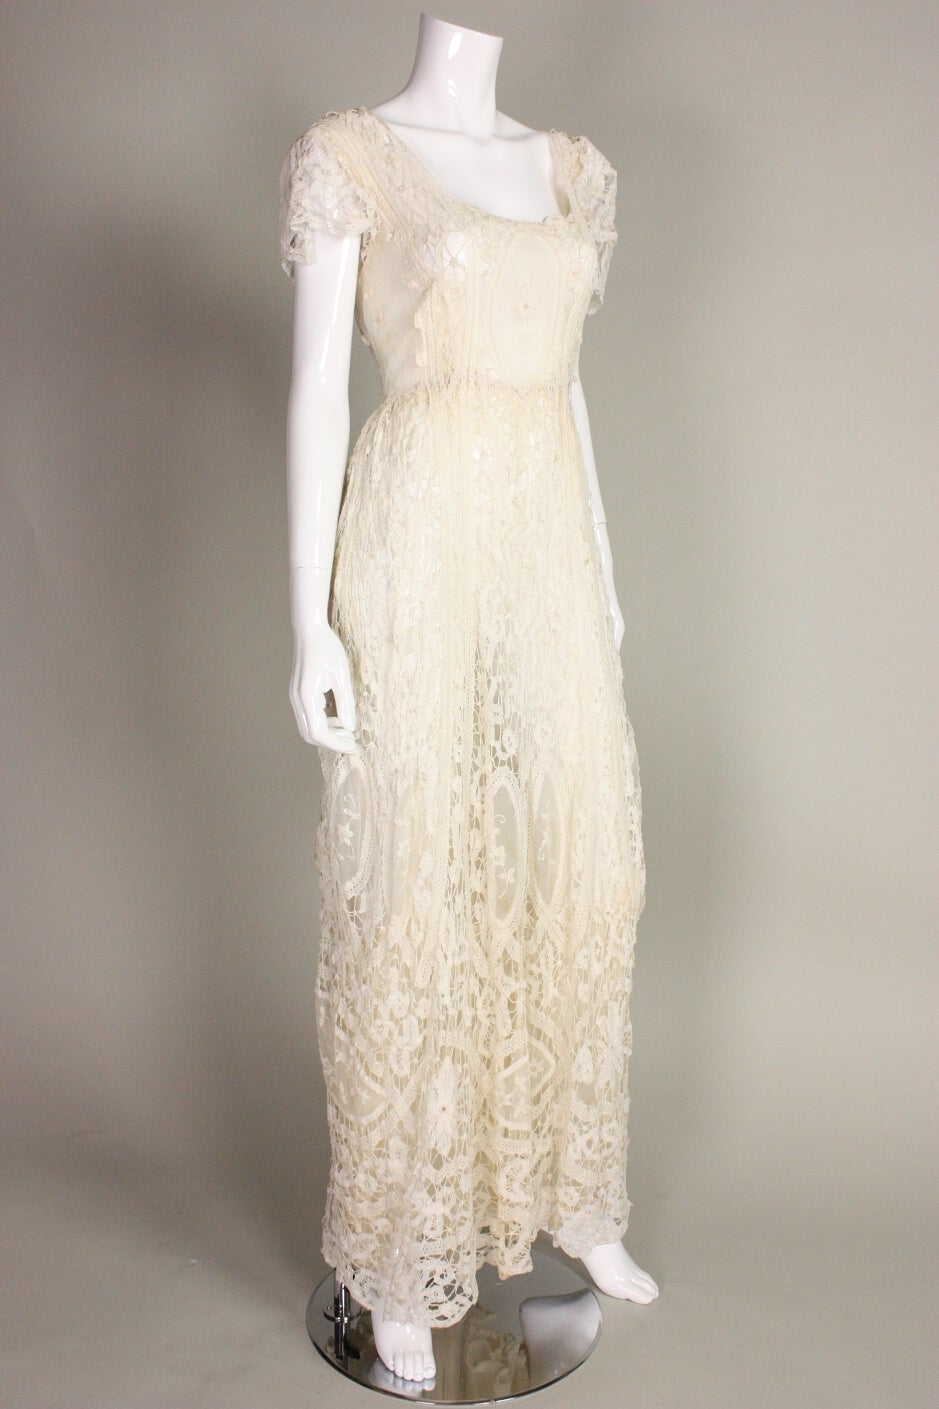 Beautiful gown dates to the Edwardian era and is made of ivory Battenburg lace.  Squared scoop neckline.  Lace is gathered at center lower back, just above the buttocks.  Short sleeves. Lined with a very fine silk. Closes in back with a series of